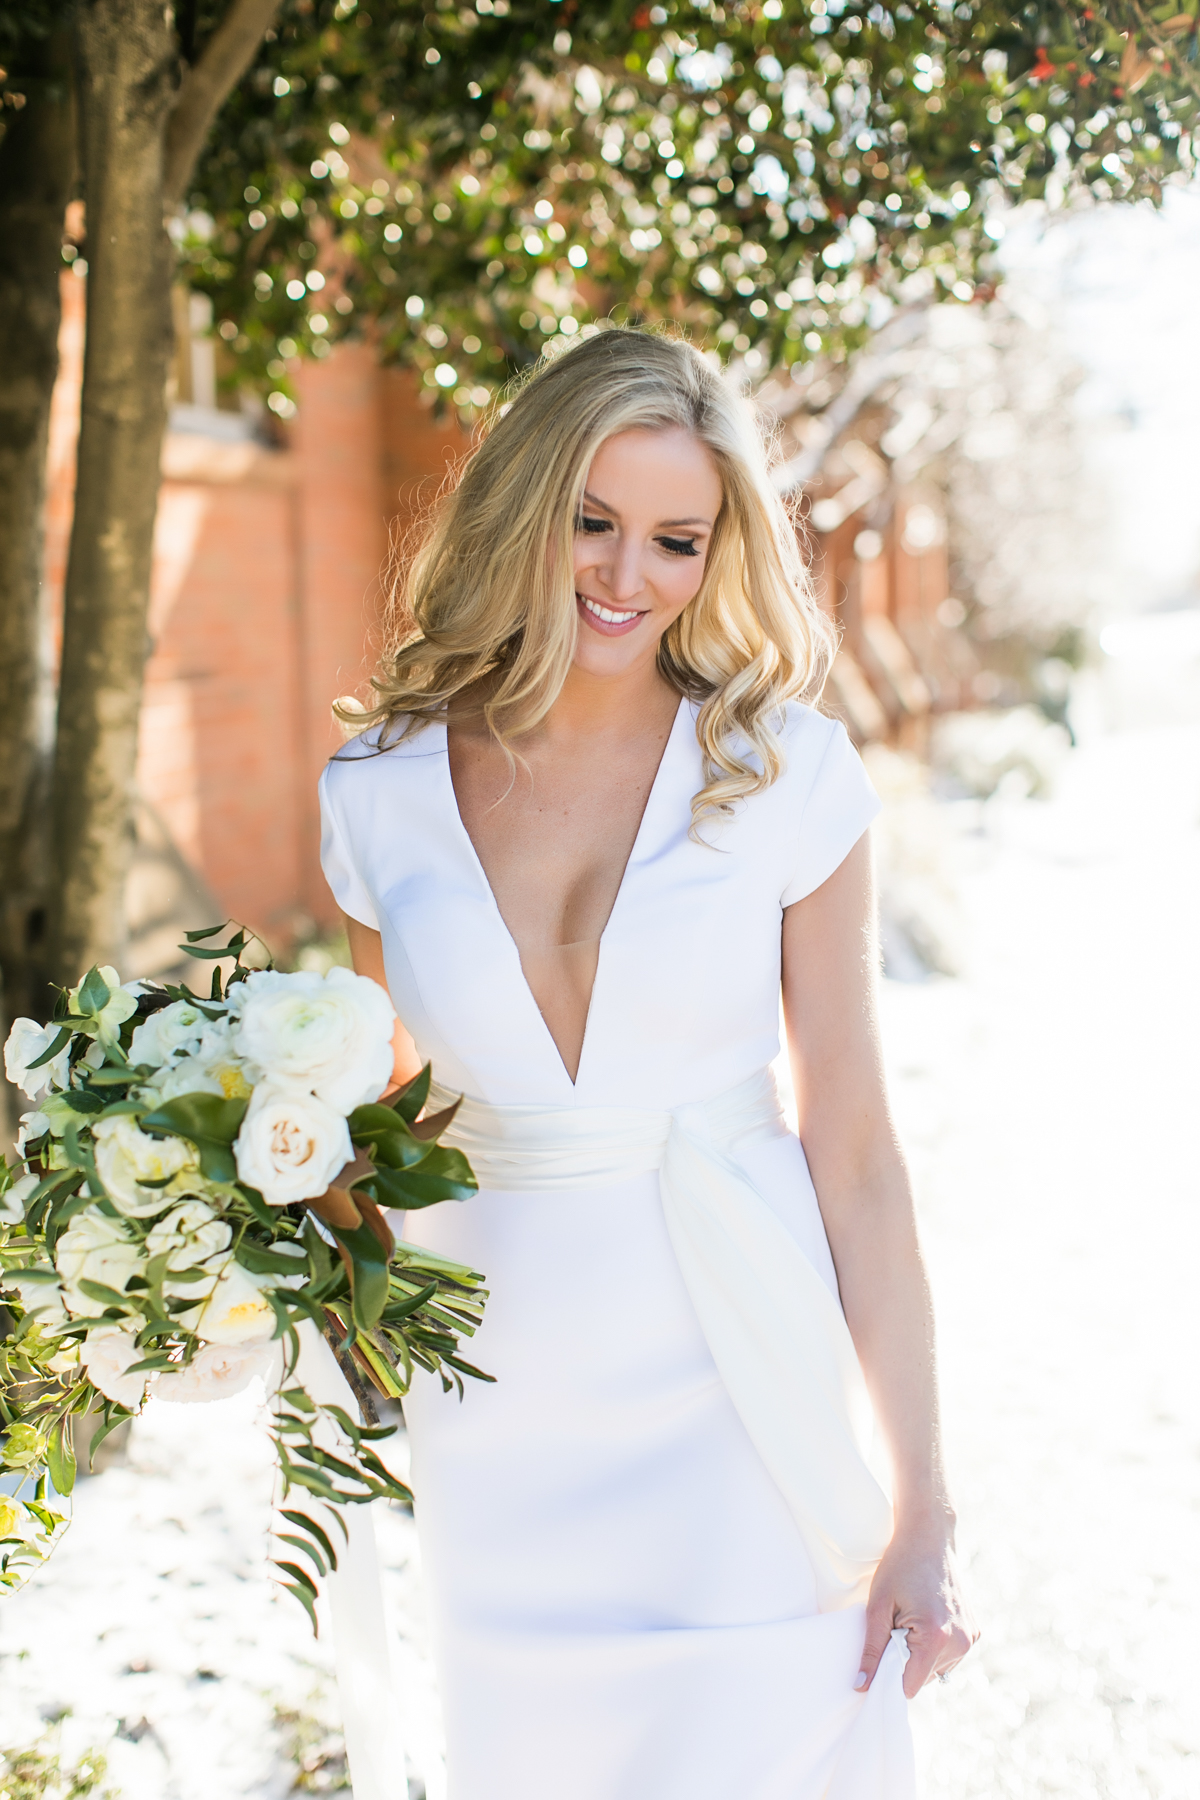 Bride with long blonde curled hairstyle wedding ideas